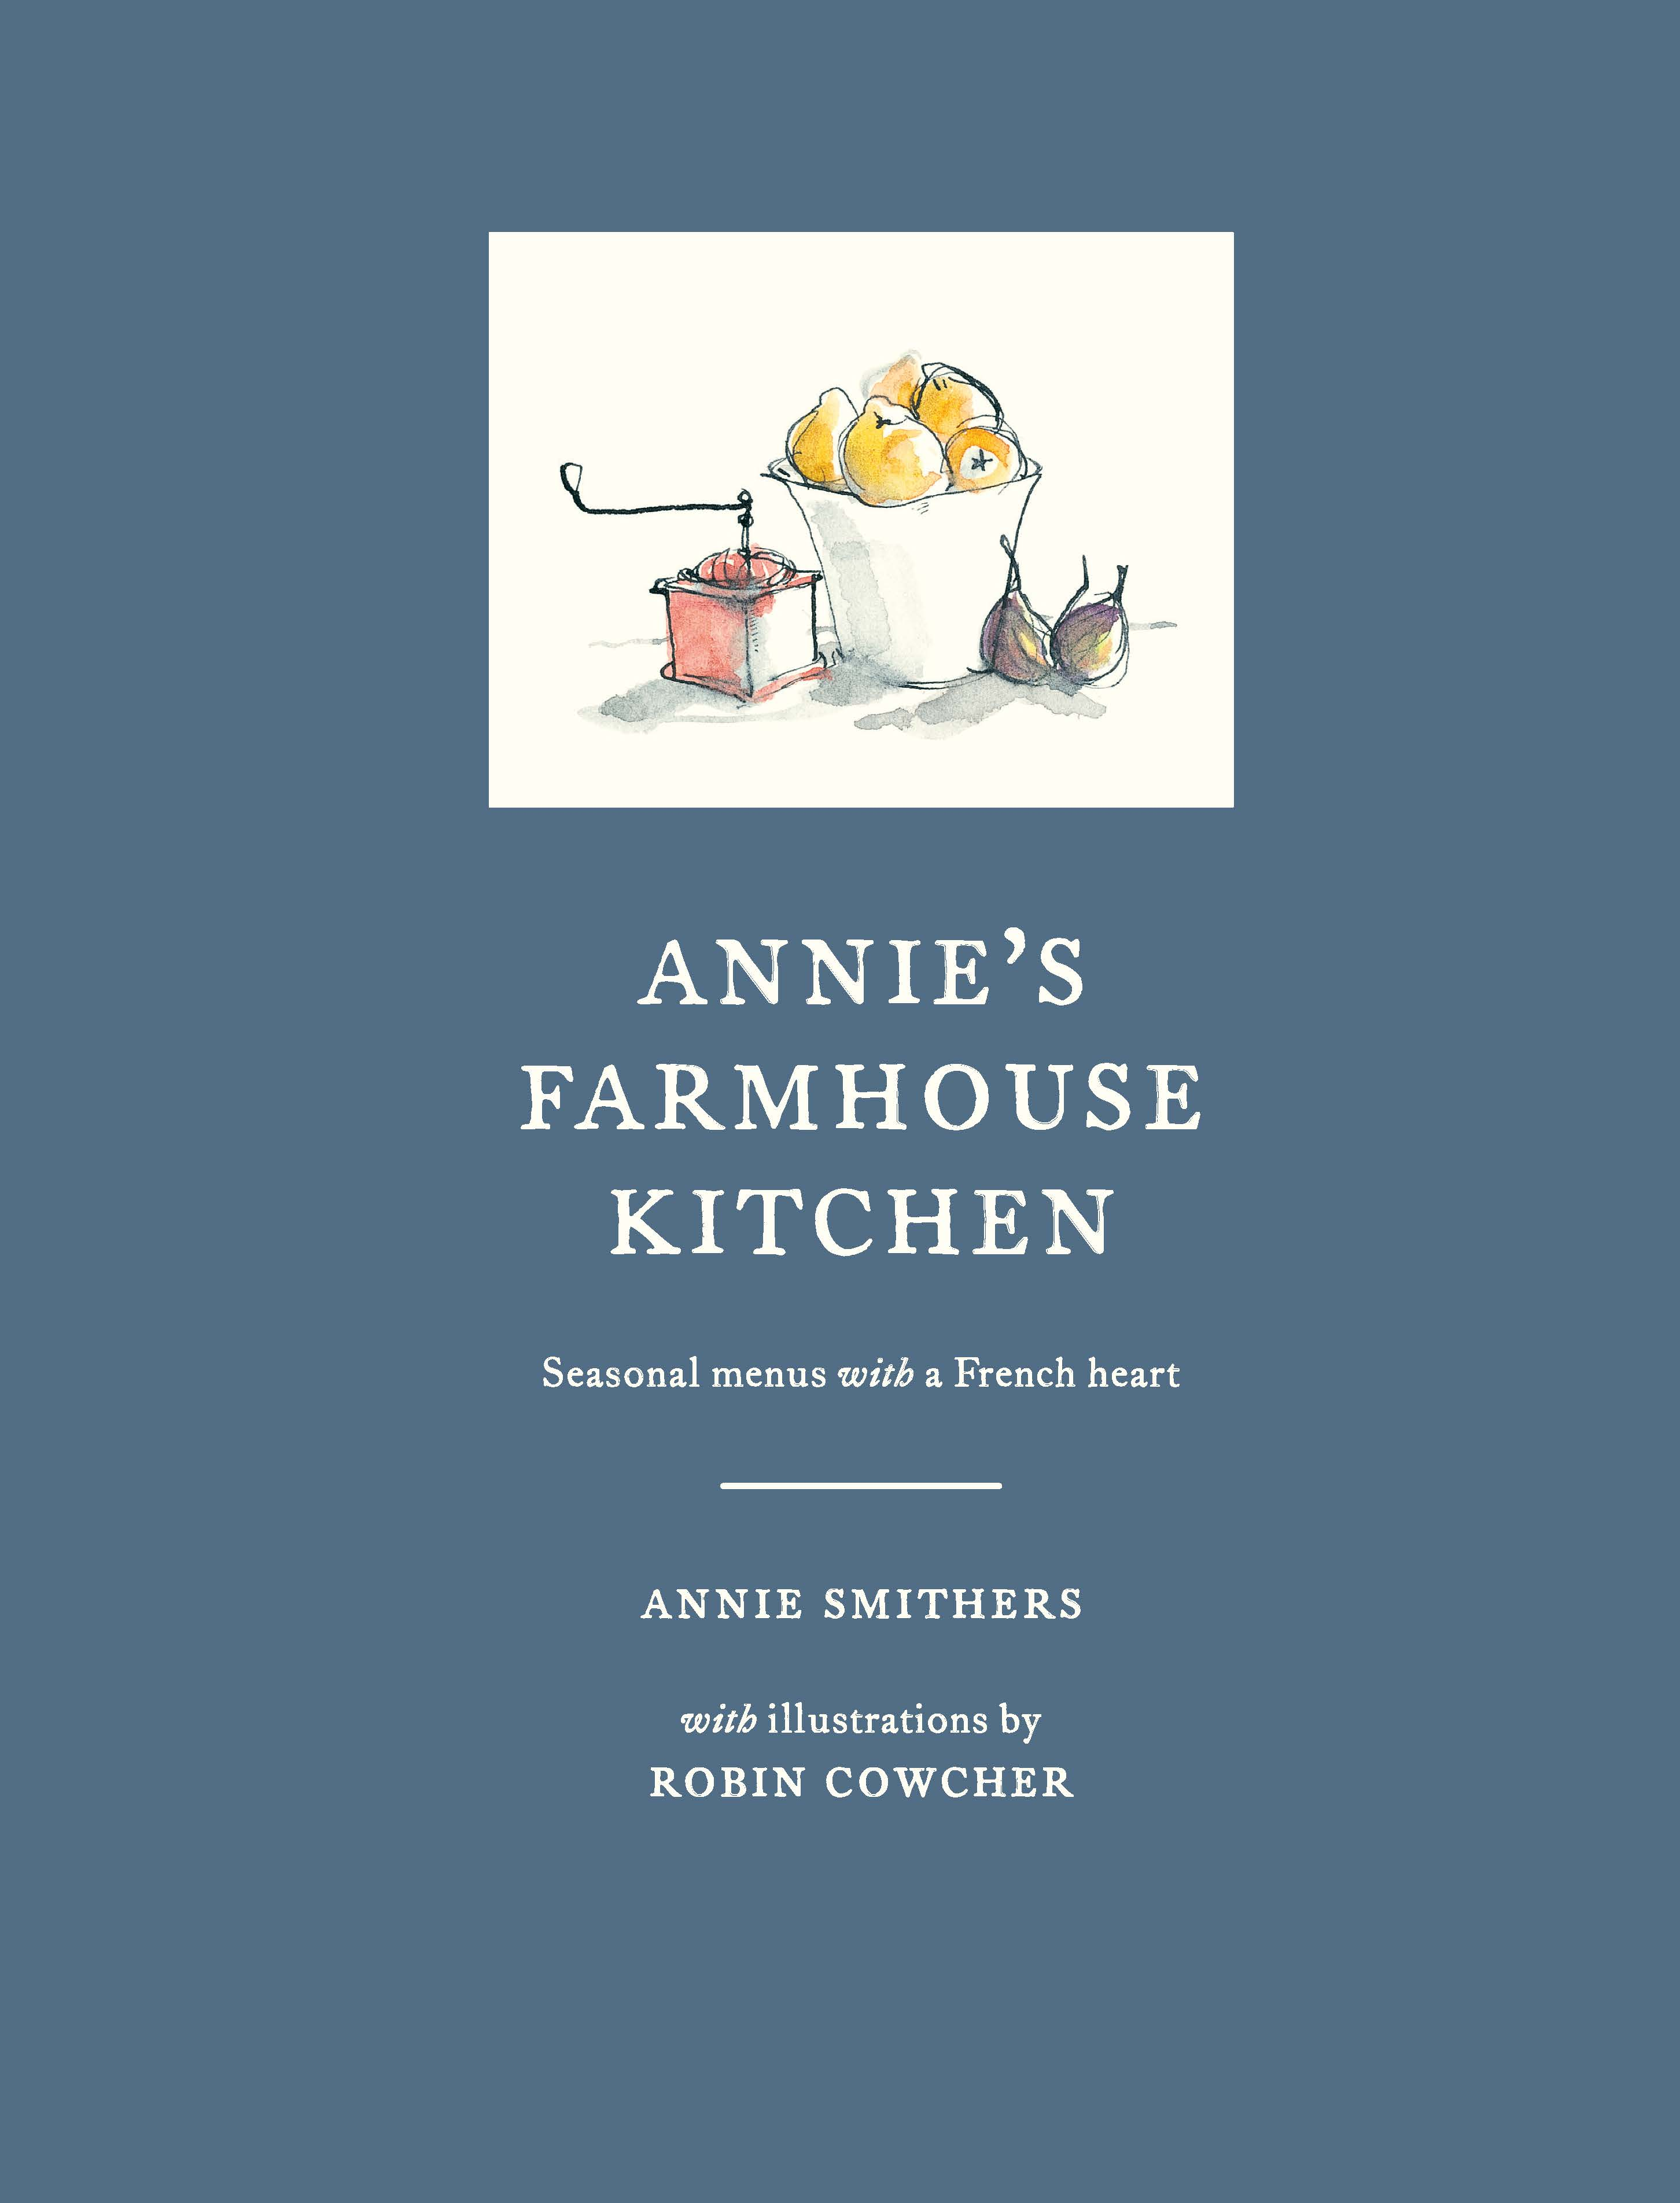 Annie's Farmhouse Kitchen